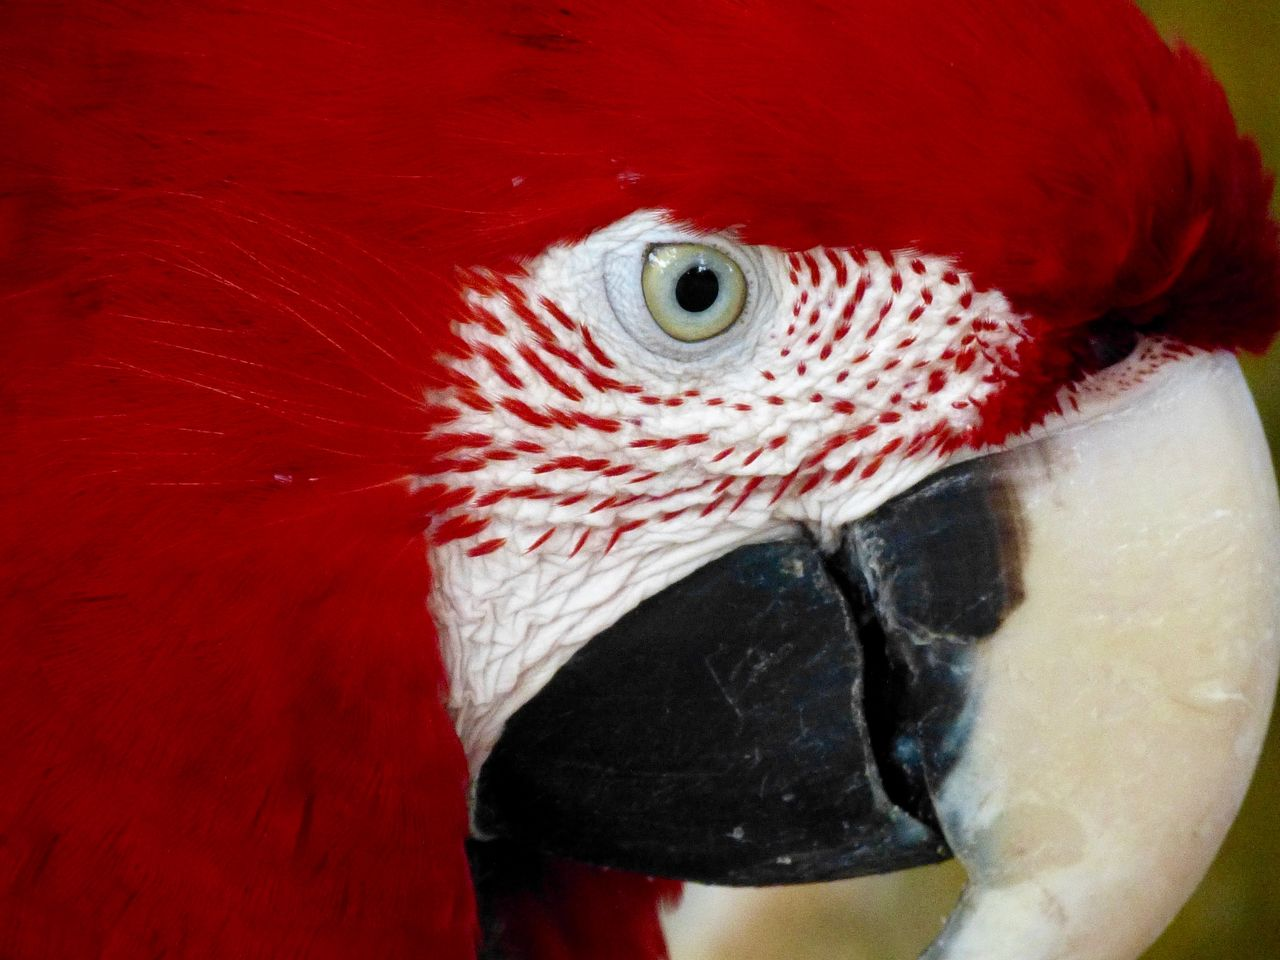 red macaw parrot, Roter Ara Papagei Animal Eye Ara Beak Beauty In Nature Close-up Macaw Parrot Macaws Nature No People One Animal Papagei Parrot Parrot Lover Red Zoology